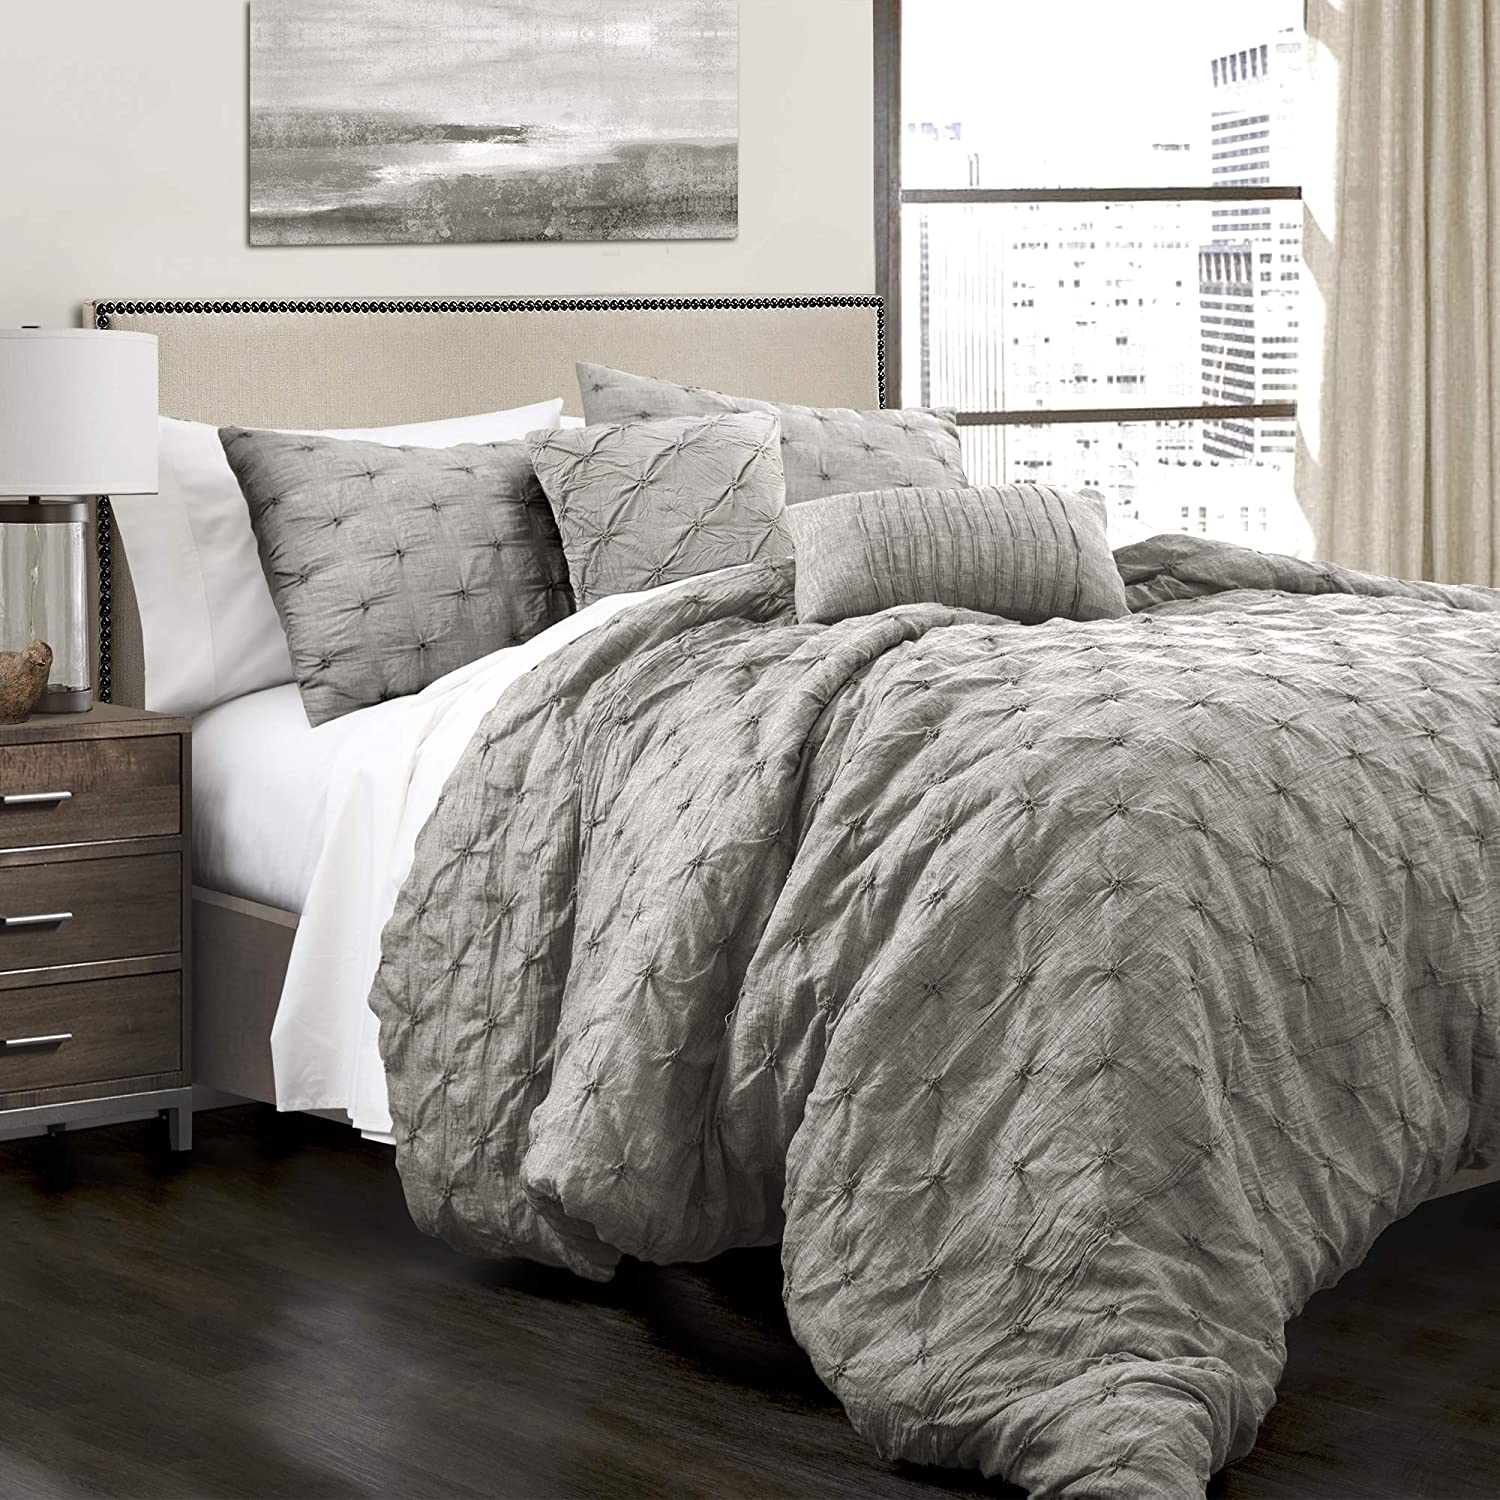 Lush Decor Ravello Comforter Shabby Chic Style Pintuck 5 Piece Bedding Set with Pillow Shams King Gray